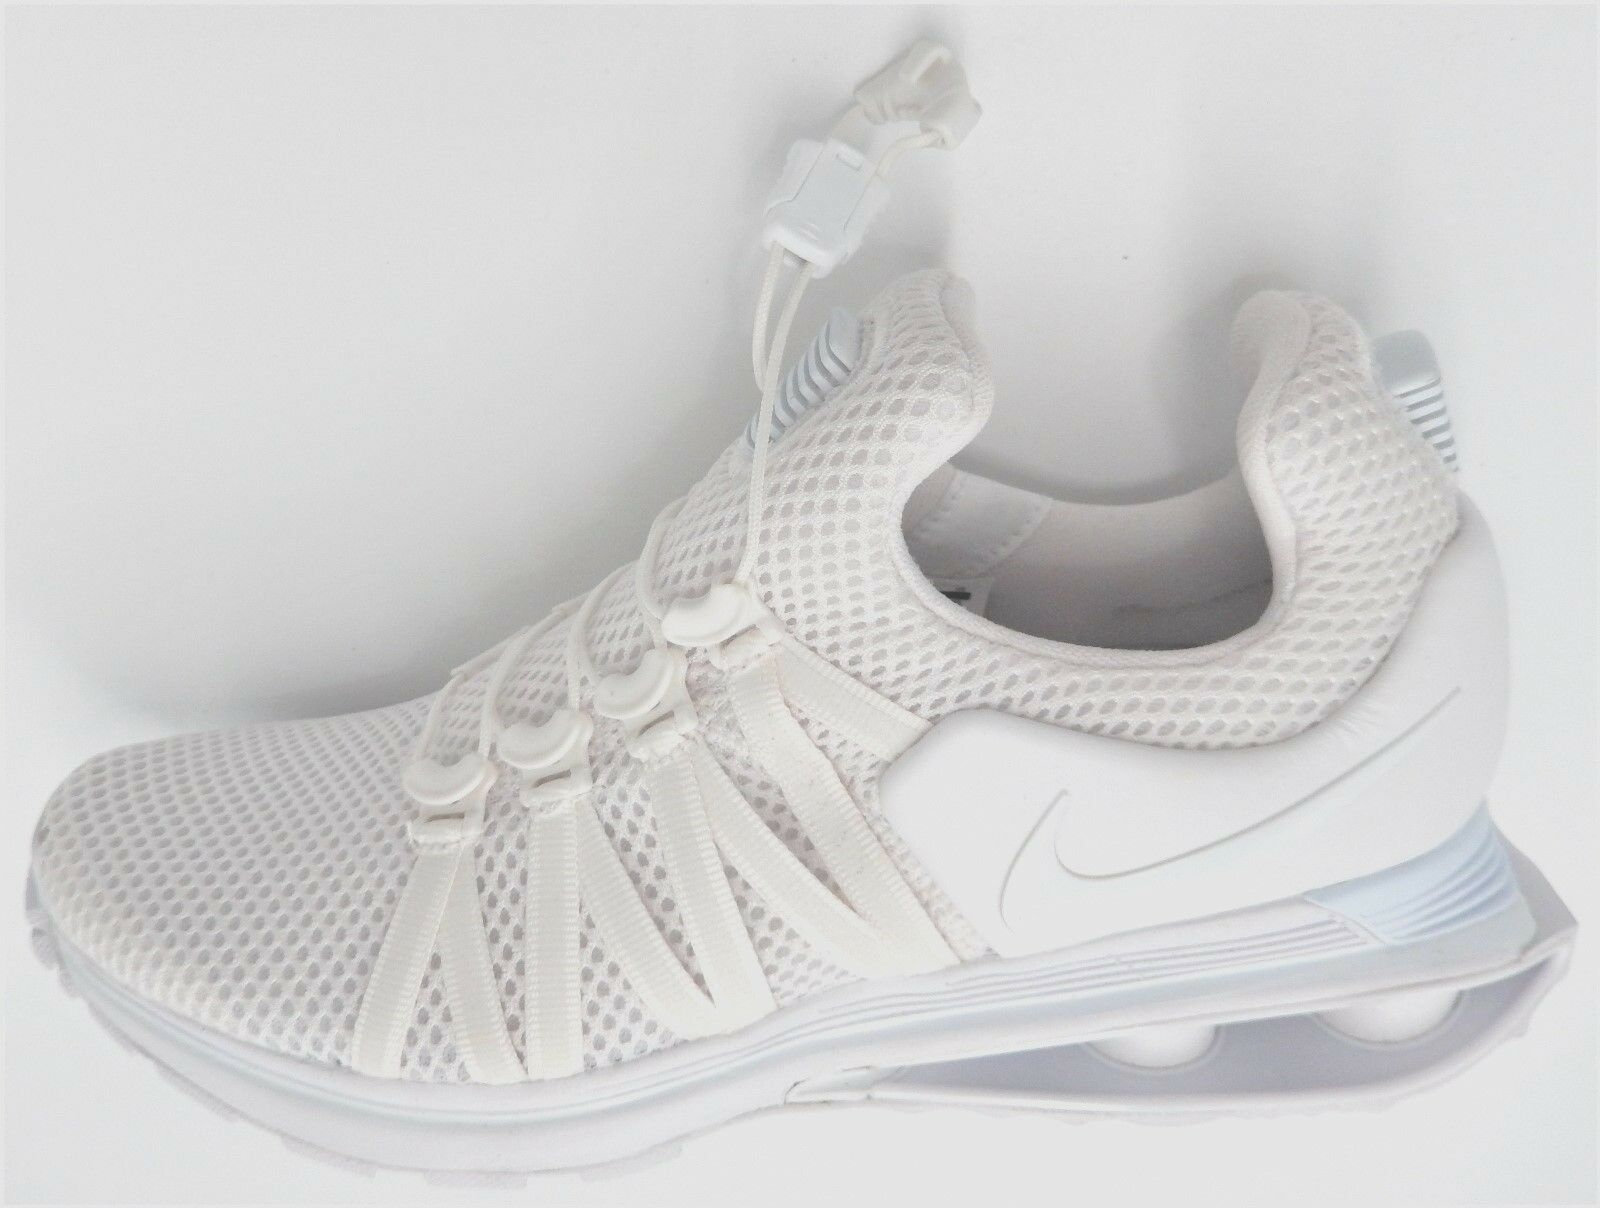 nike air flyknit max thea ultra flyknit air taille 9 des chaussures de course  s 881175 005 nouveau 879a34